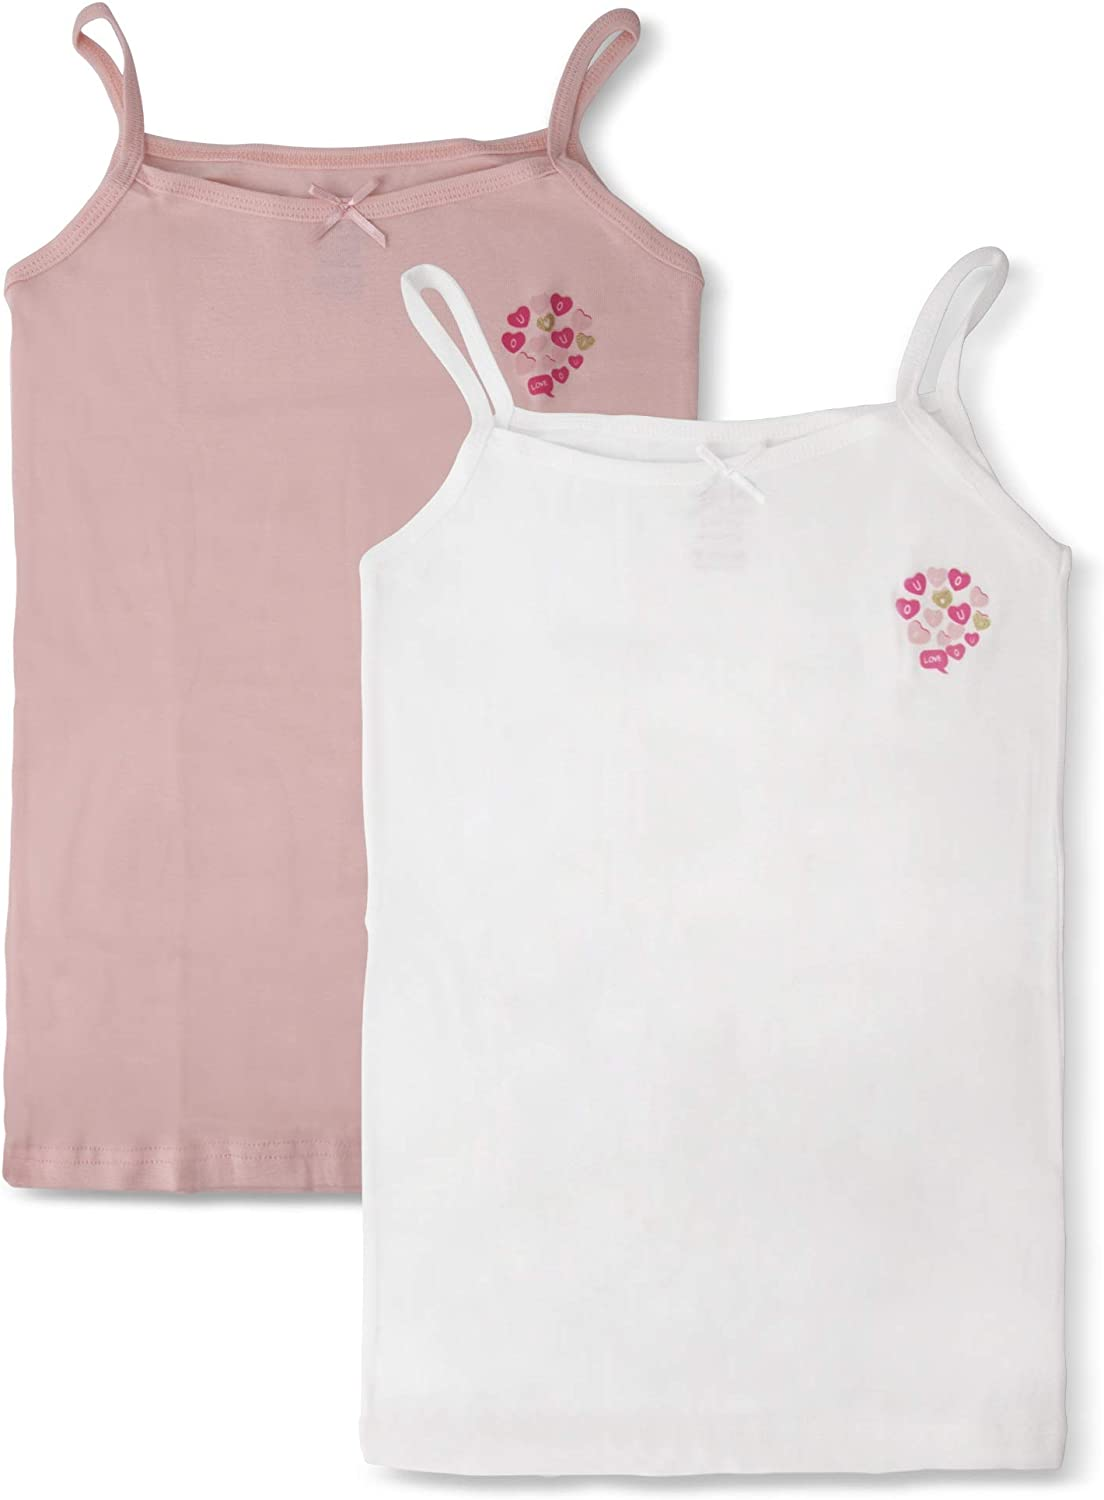 3 pk Tagless Cotton Camisole. Brix Toddler and Girls Cami Undershirts